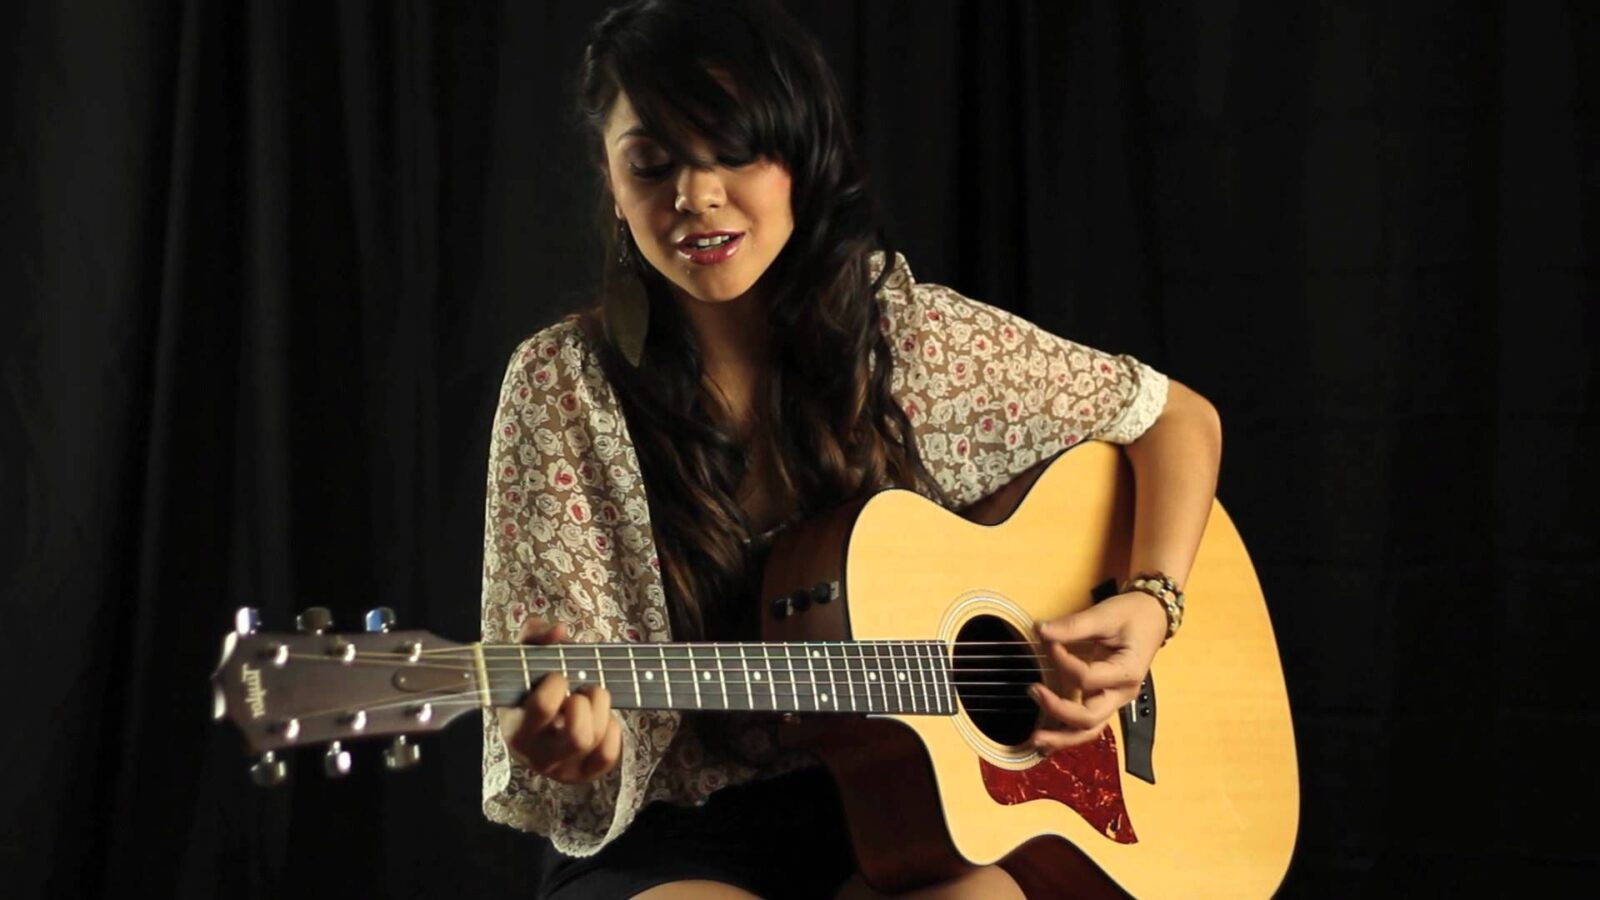 Alyssa Bernal with guitar